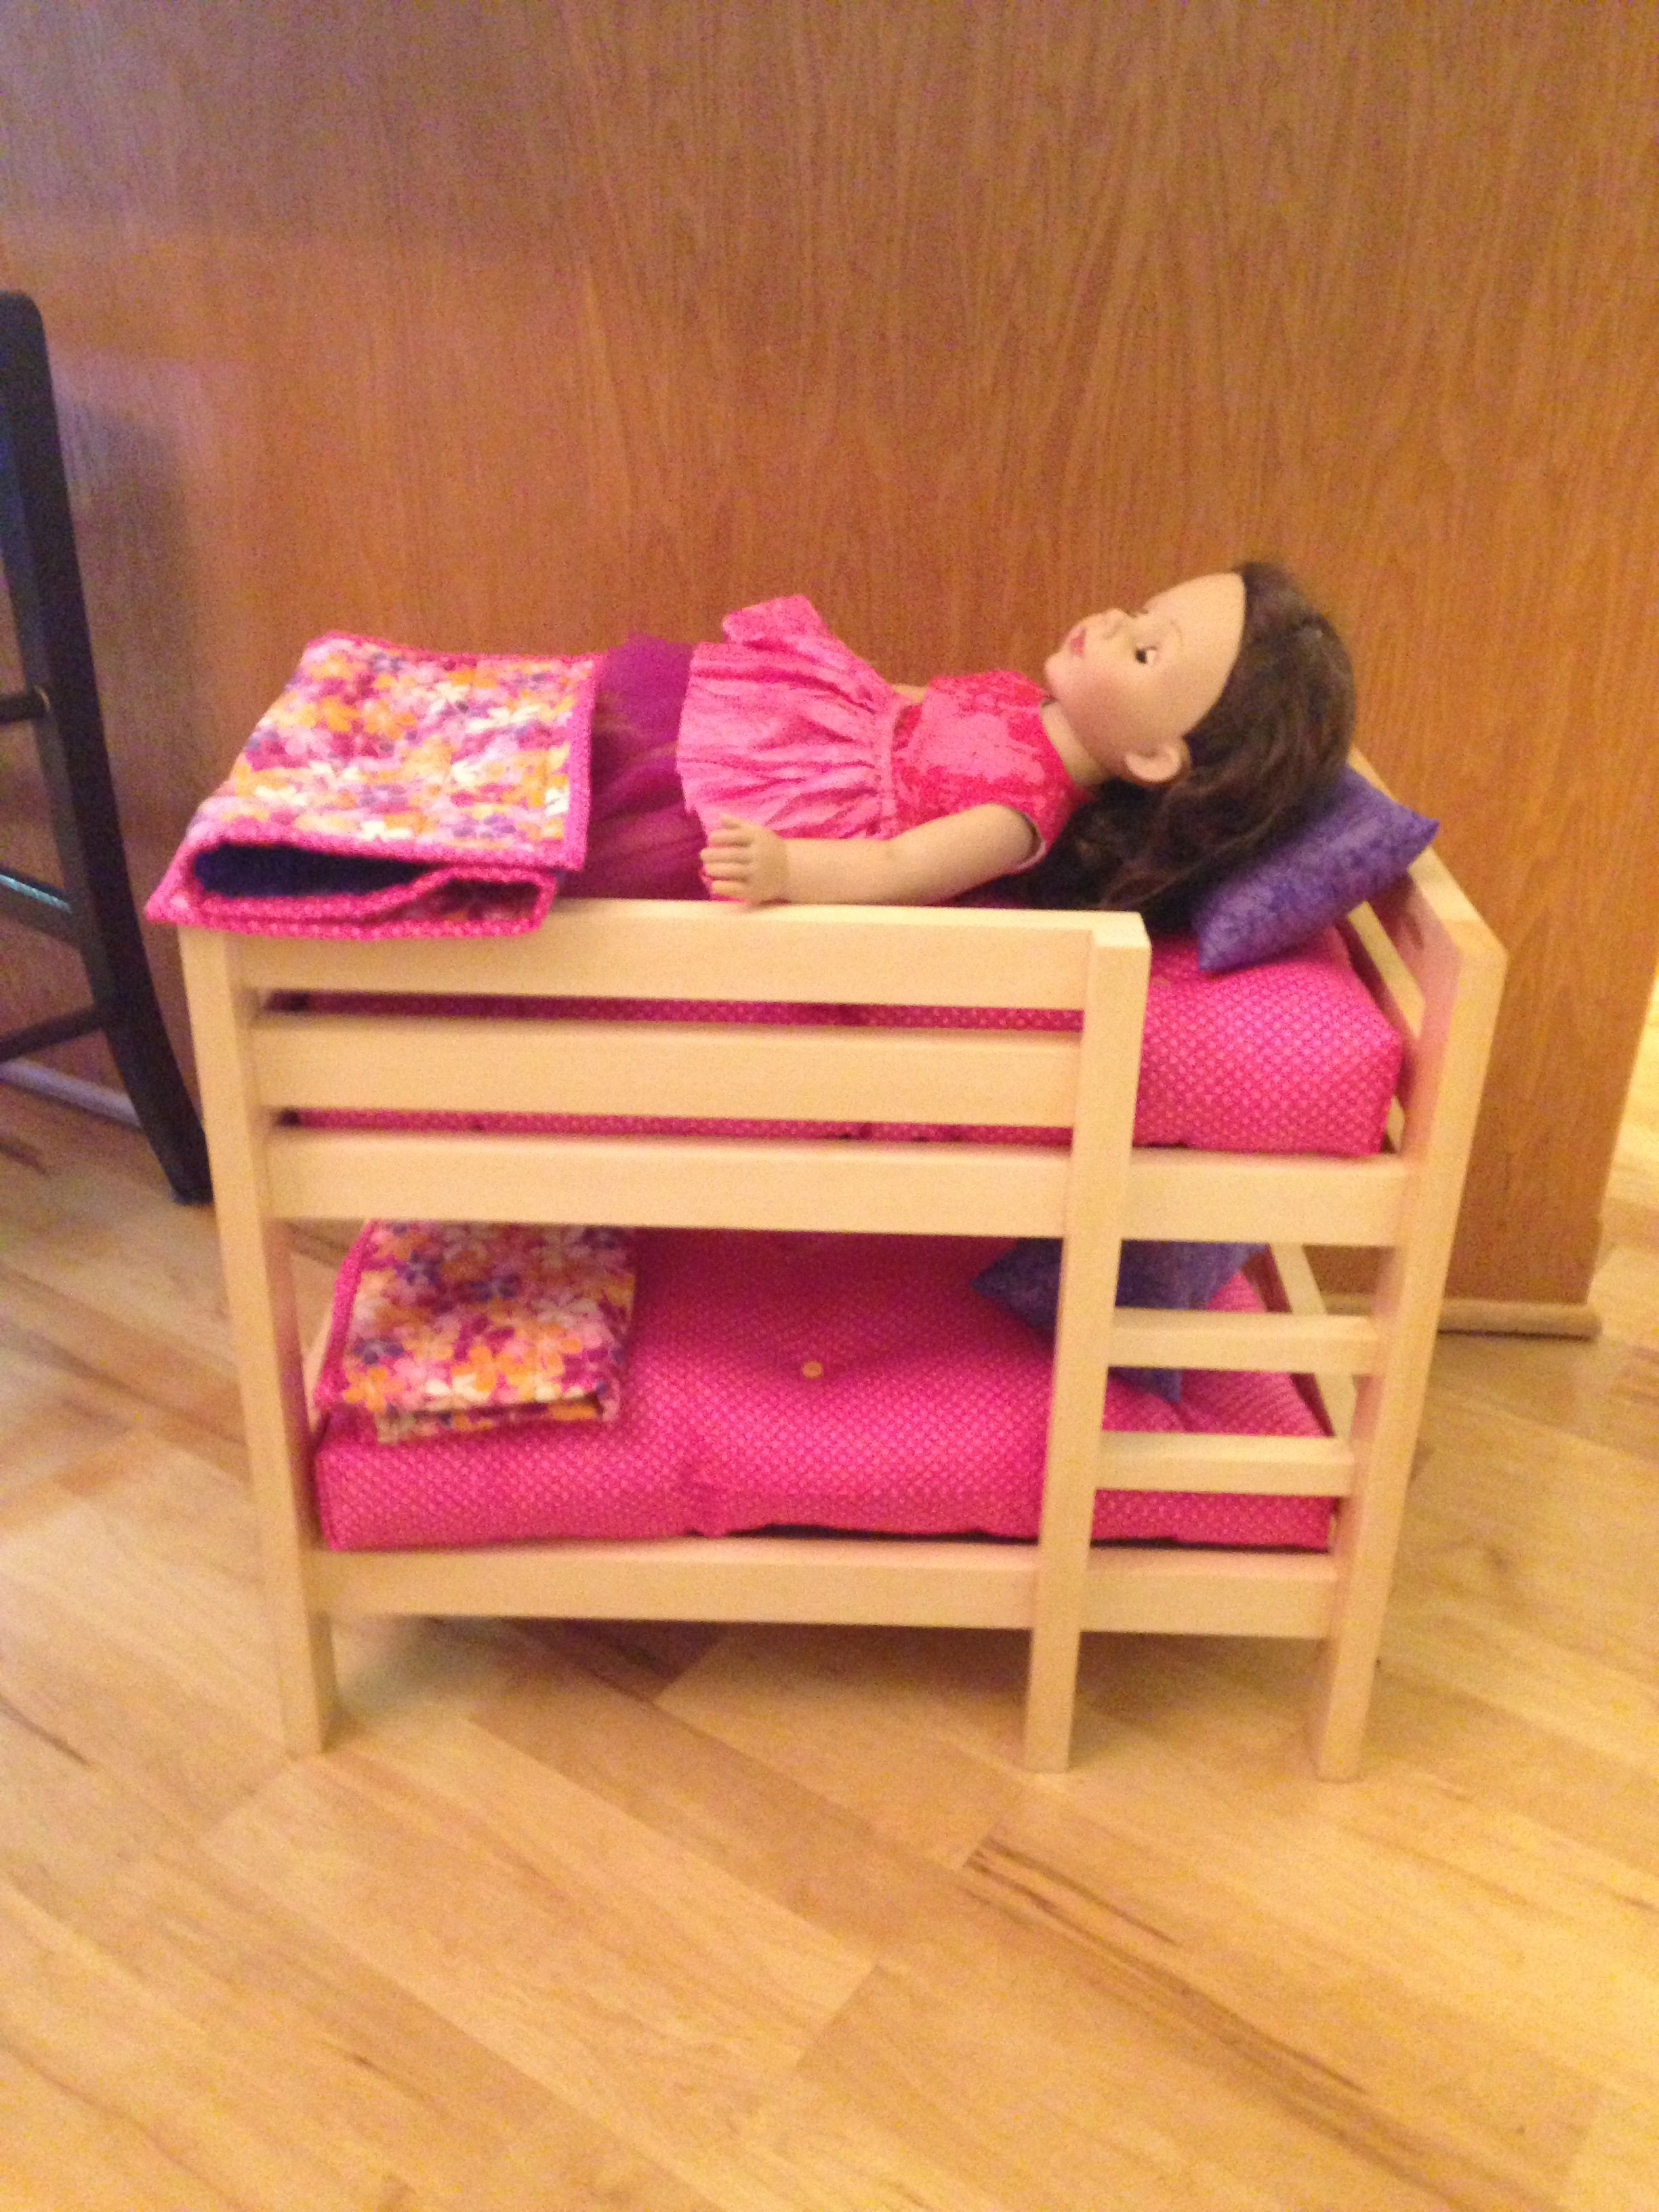 Dad's version of Ana white bunk bed pattern. I made the